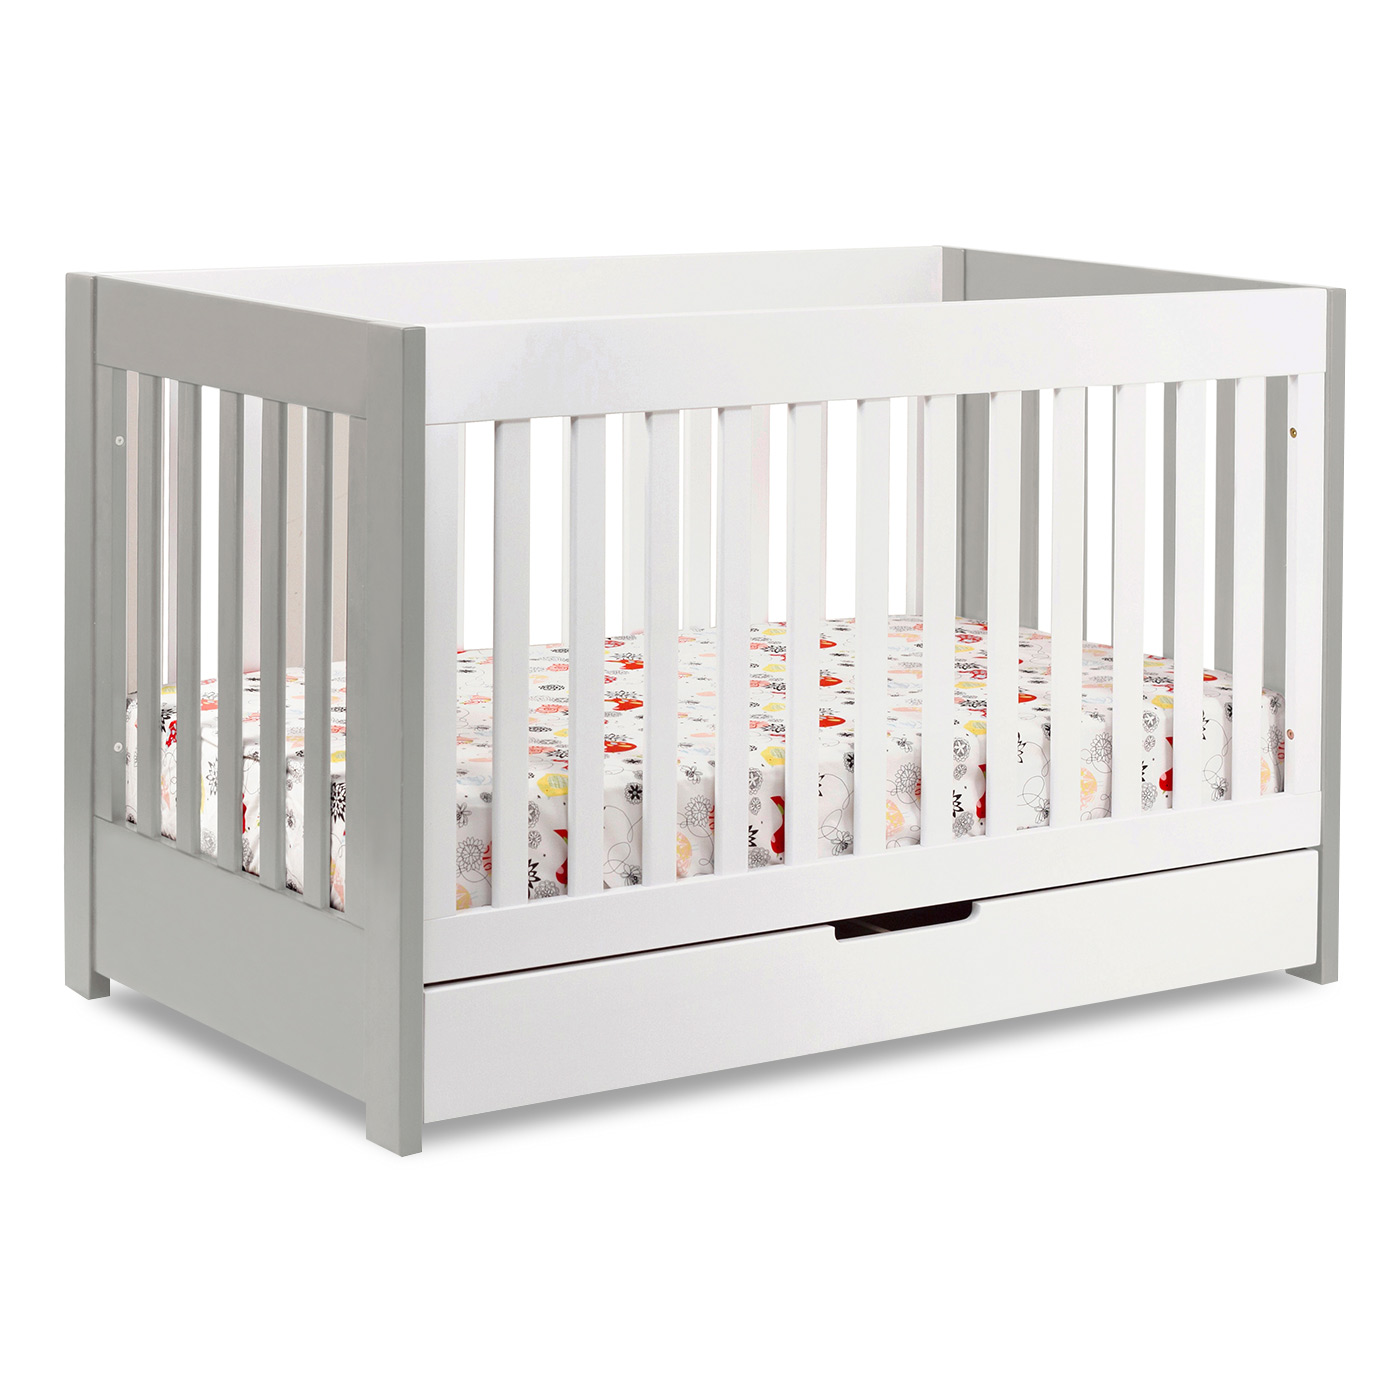 babyletto furniture. Babyletto Furniture W